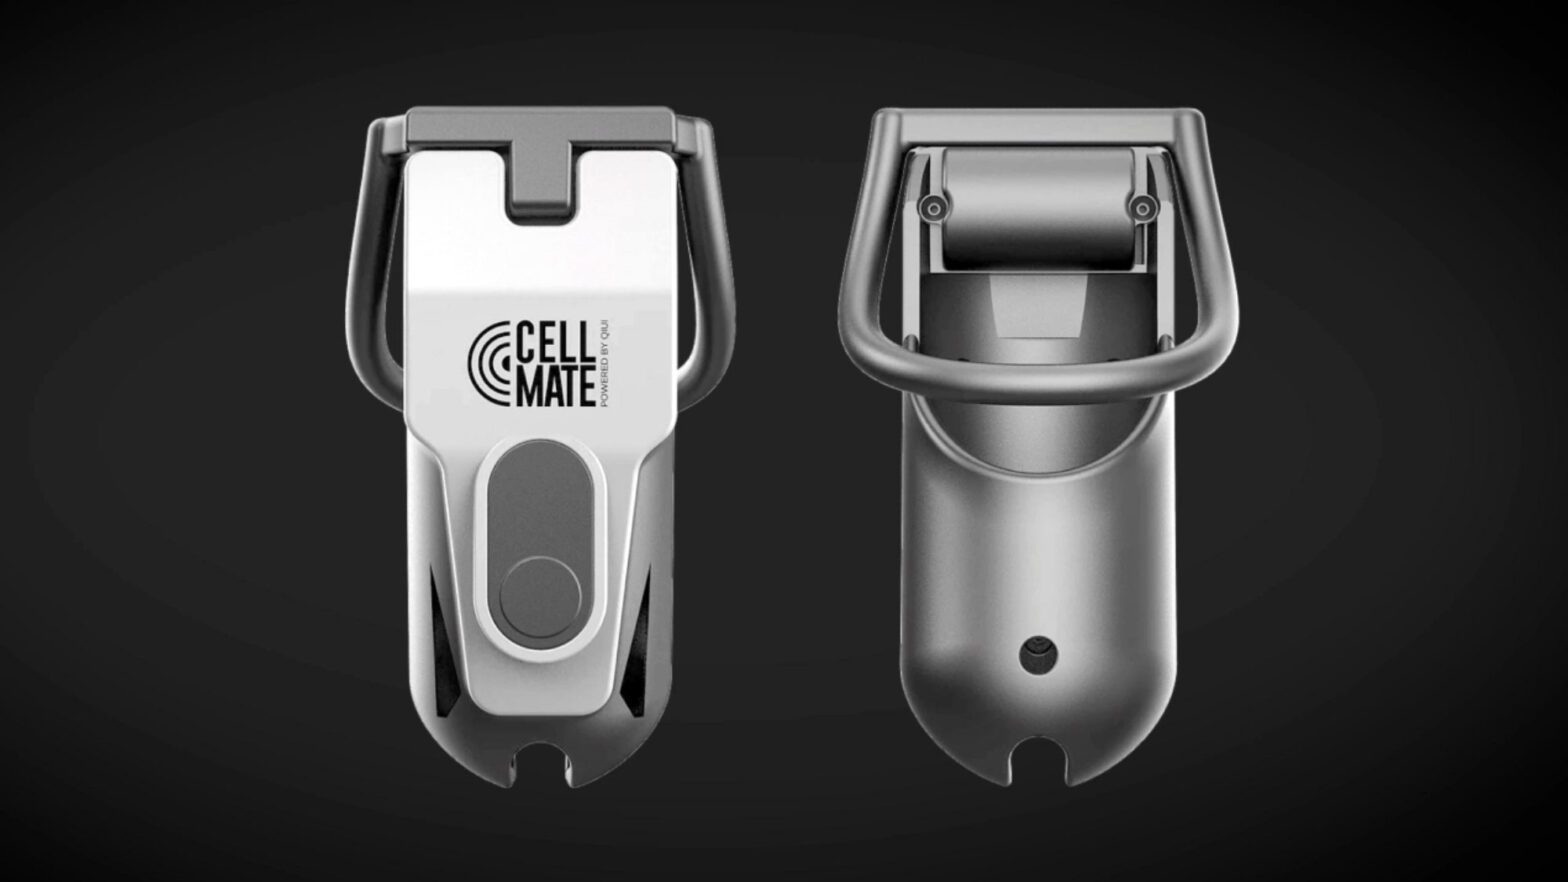 Qiui Cellmate App-controlled Chastity Cage